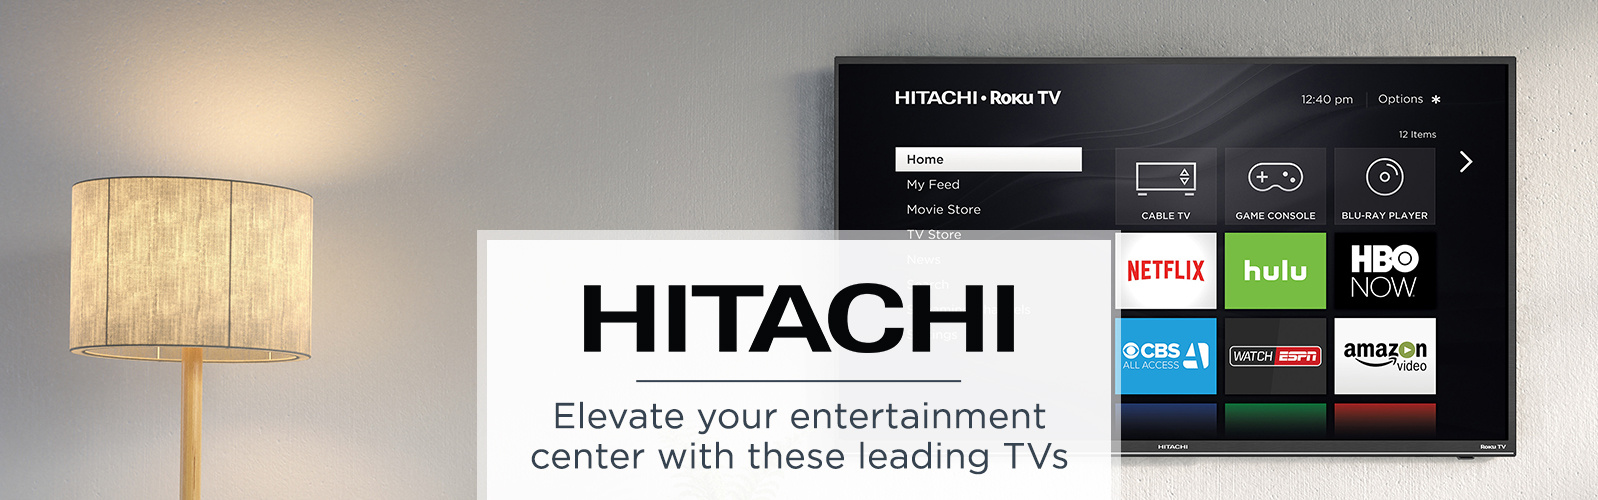 Hitachi.  Elevate your entertainment center with these leading TVs.